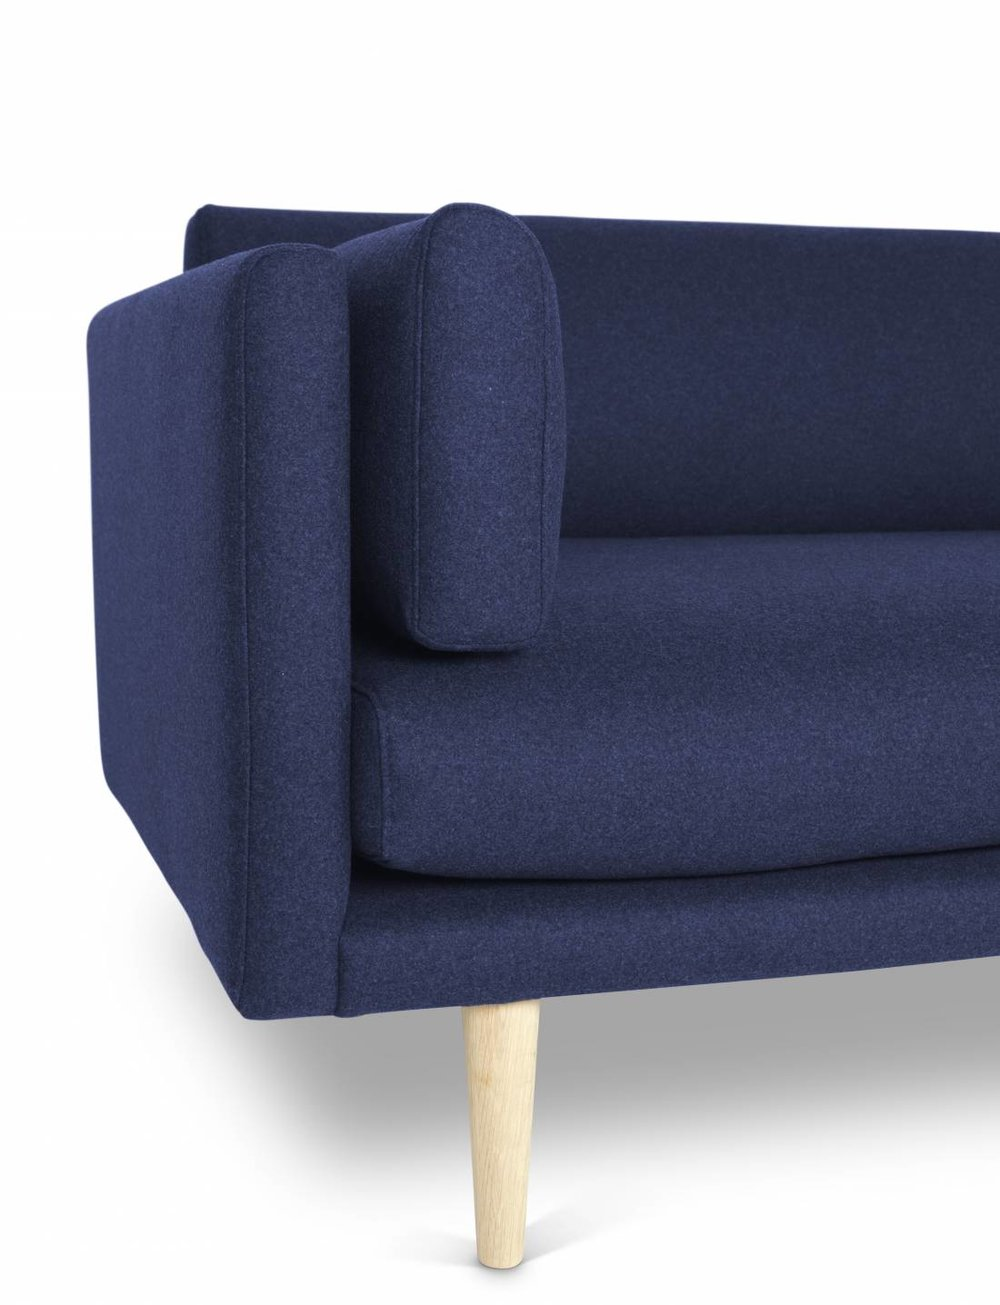 A-Sofa_-Sigurd-Larsen-for-Formal-A_Danish-design-berlin_Blue-Wool-corner-550x718@2x.jpg